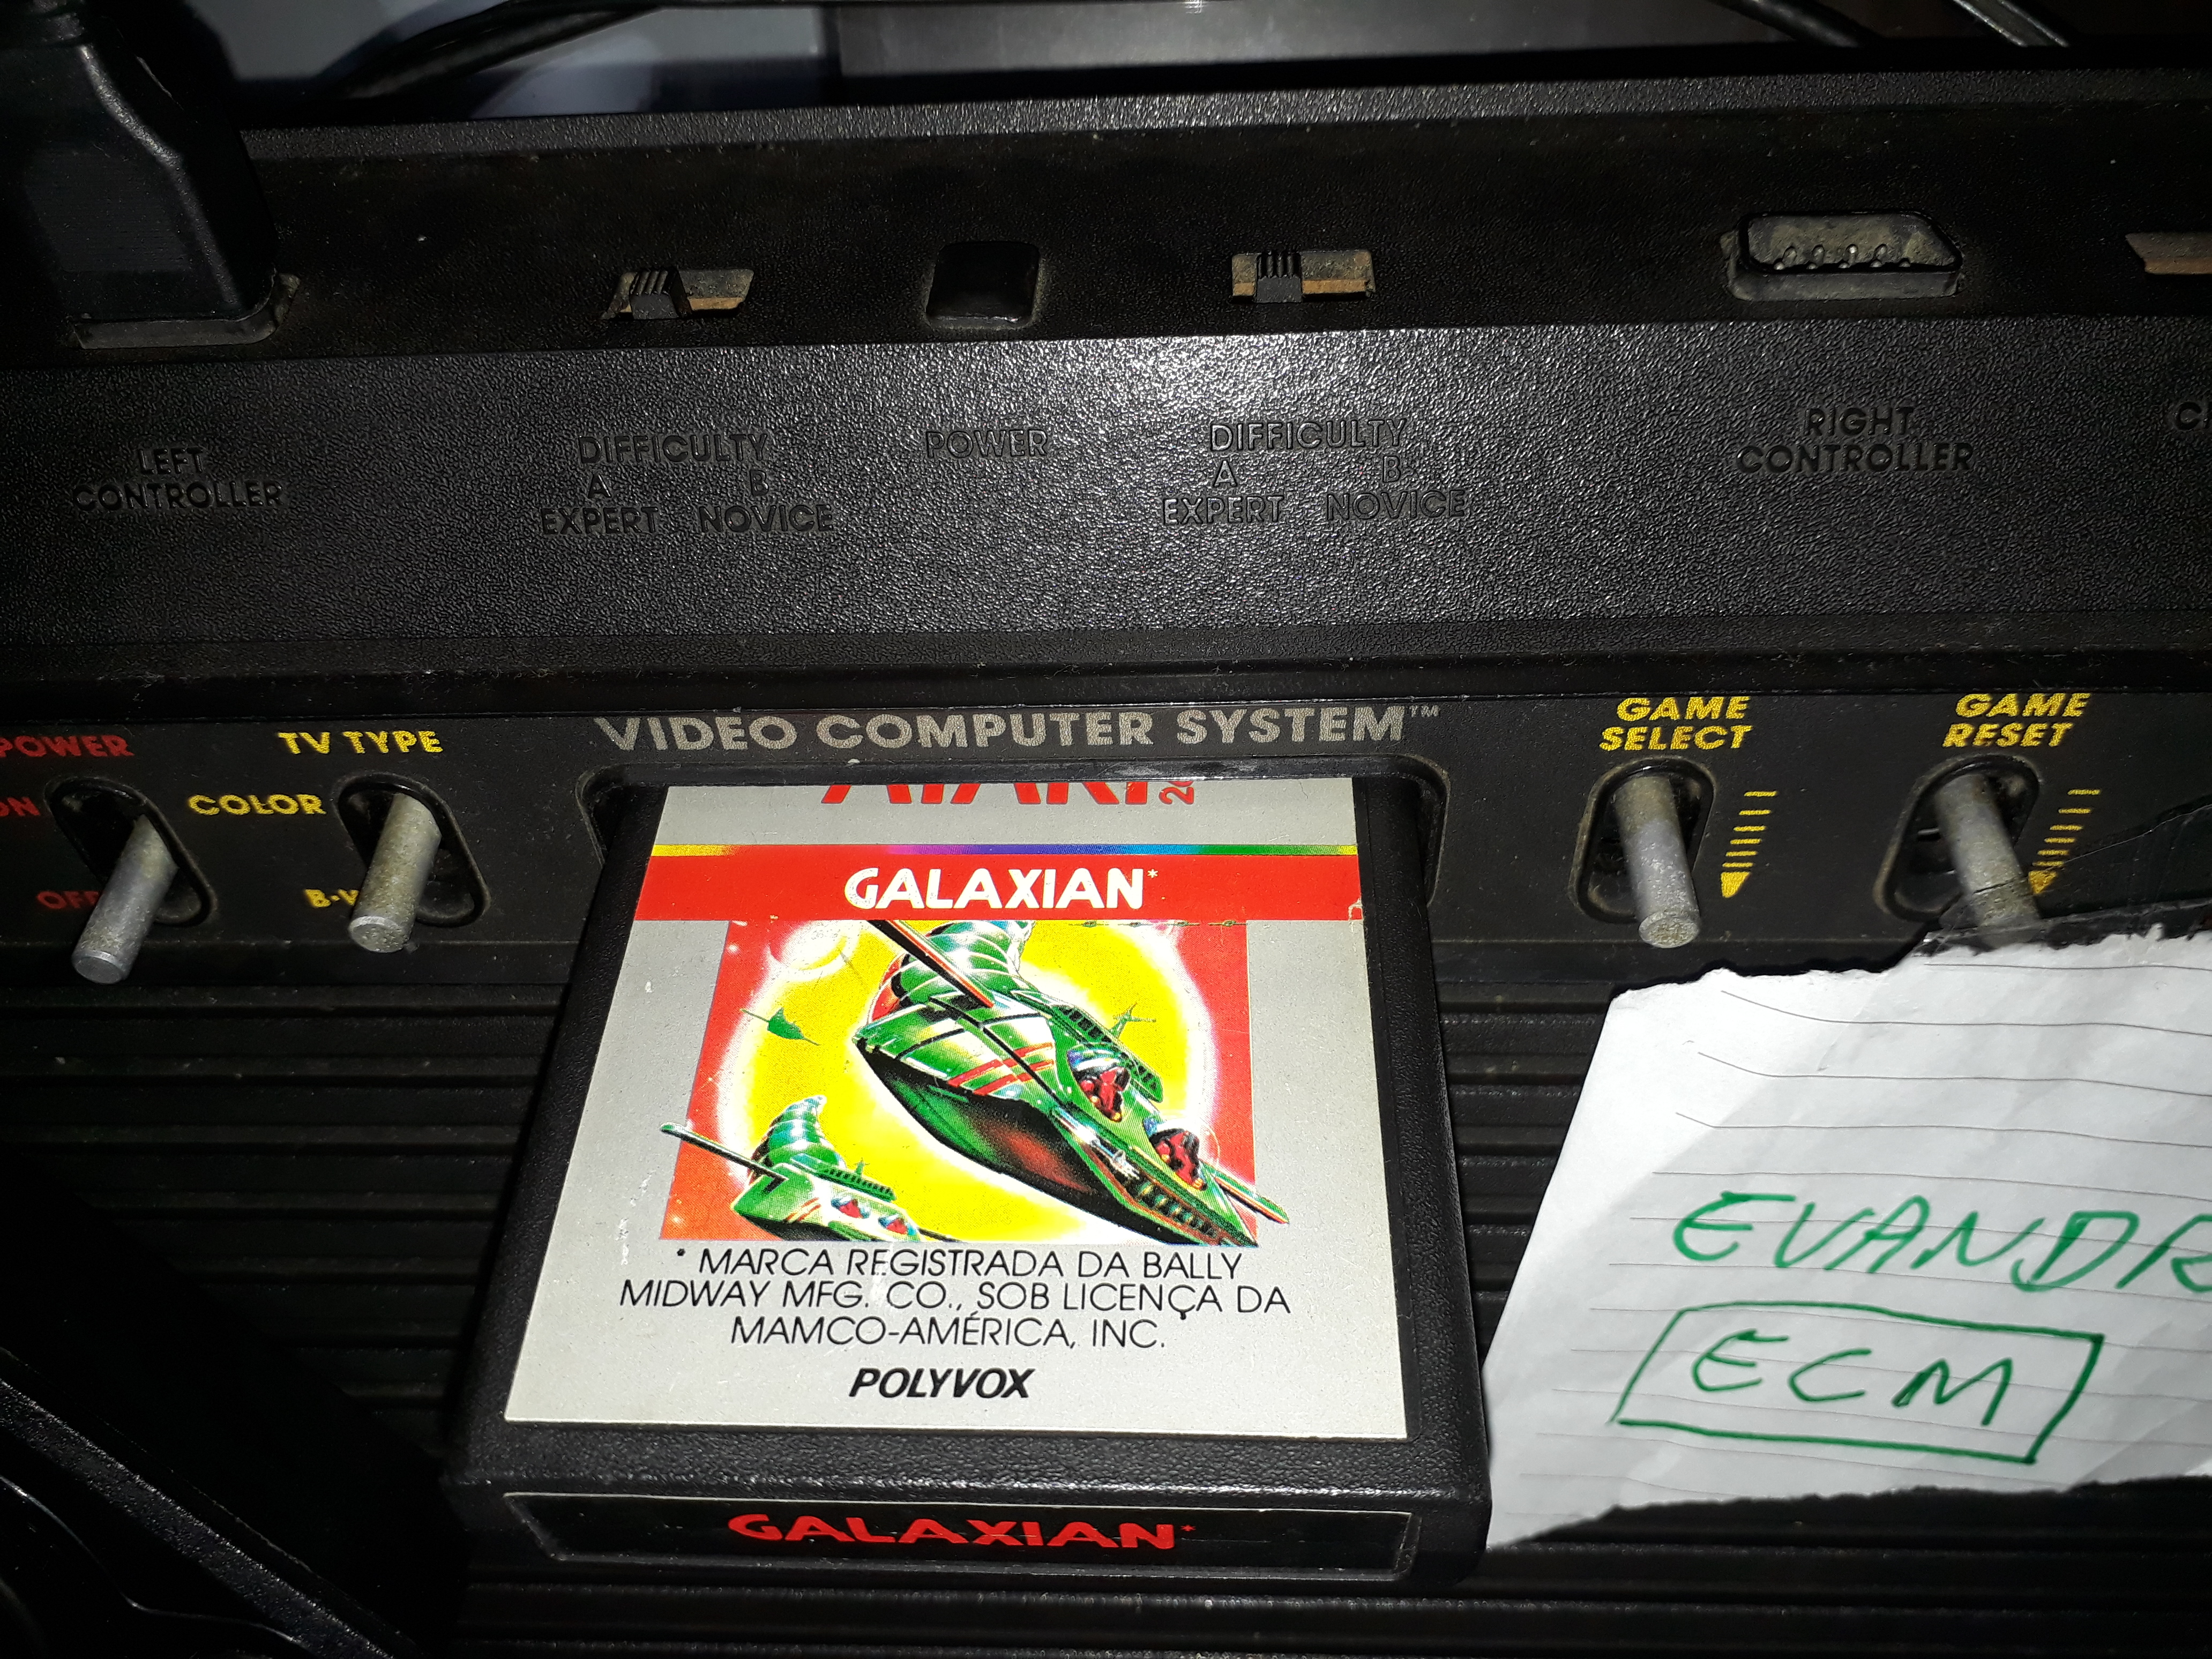 Evandro: Galaxian (Atari 2600 Expert/A) 68,230 points on 2018-11-01 20:01:31